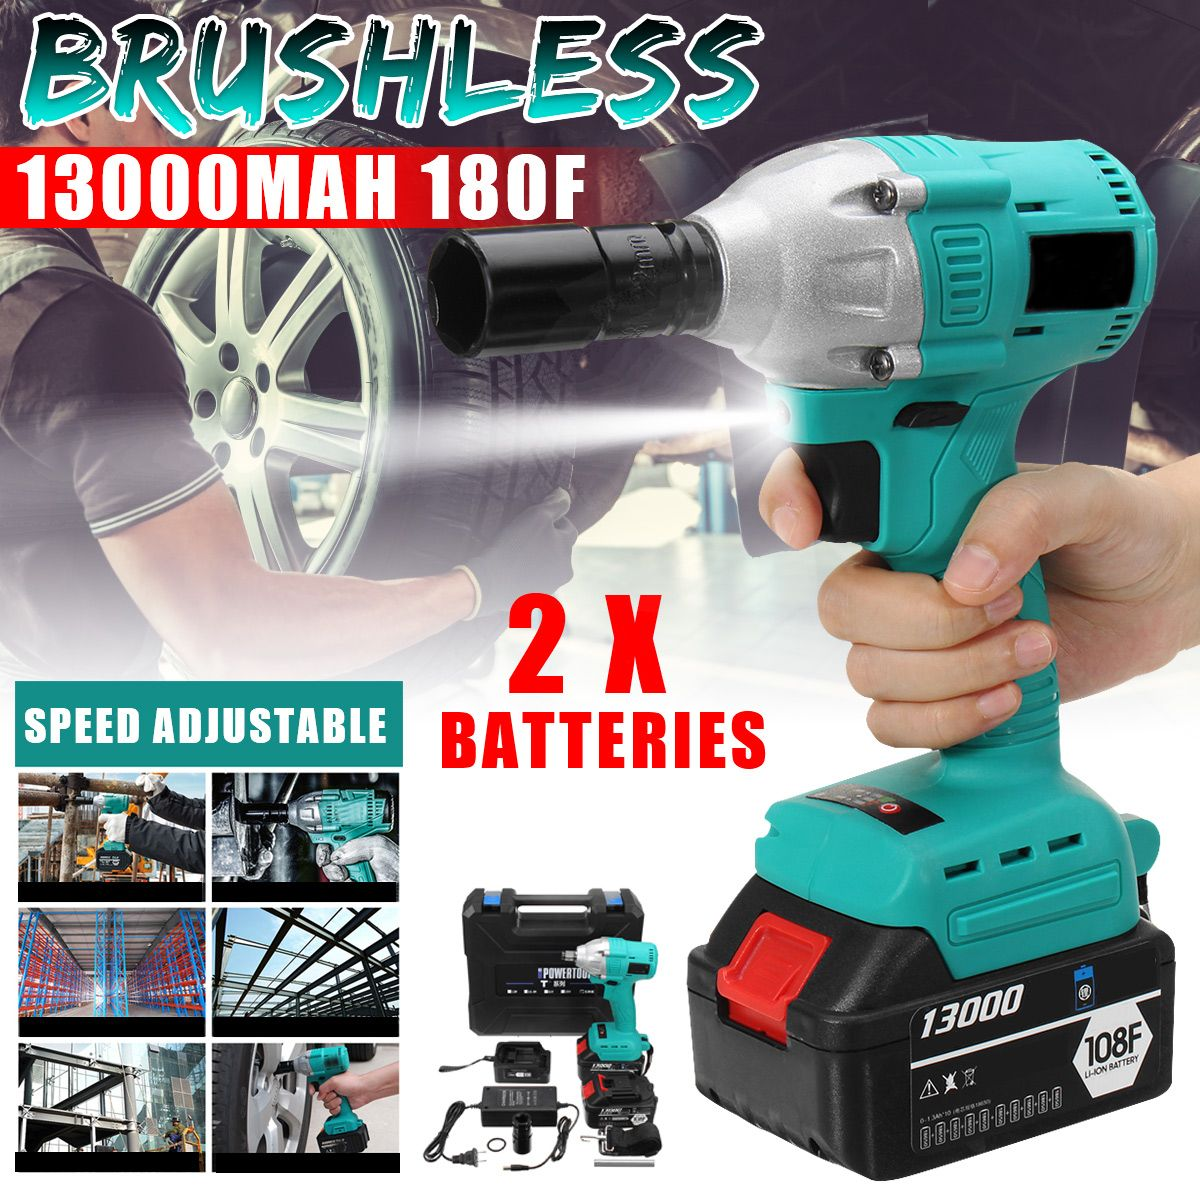 Brushless Electric Shock Cordless Impact Wrench 340 N.M Cordless DIY Household Electric Wrench w/2Pcs 108F 13000mAh Batteries